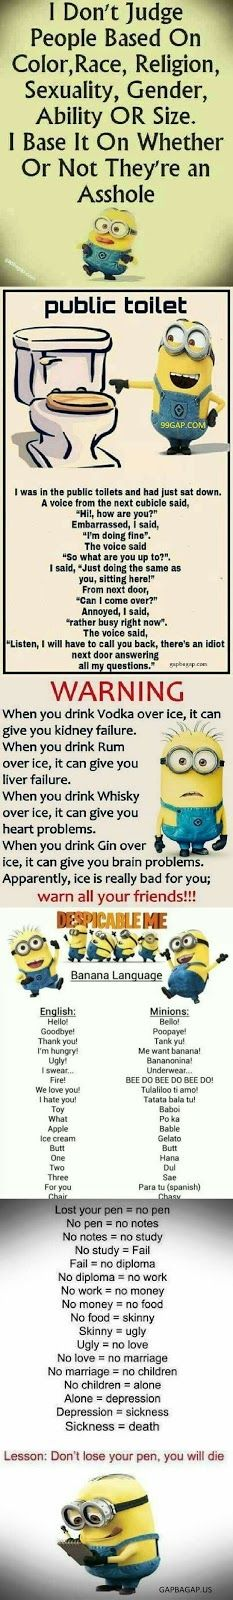 #FunnyMemes Collection By The #Minions